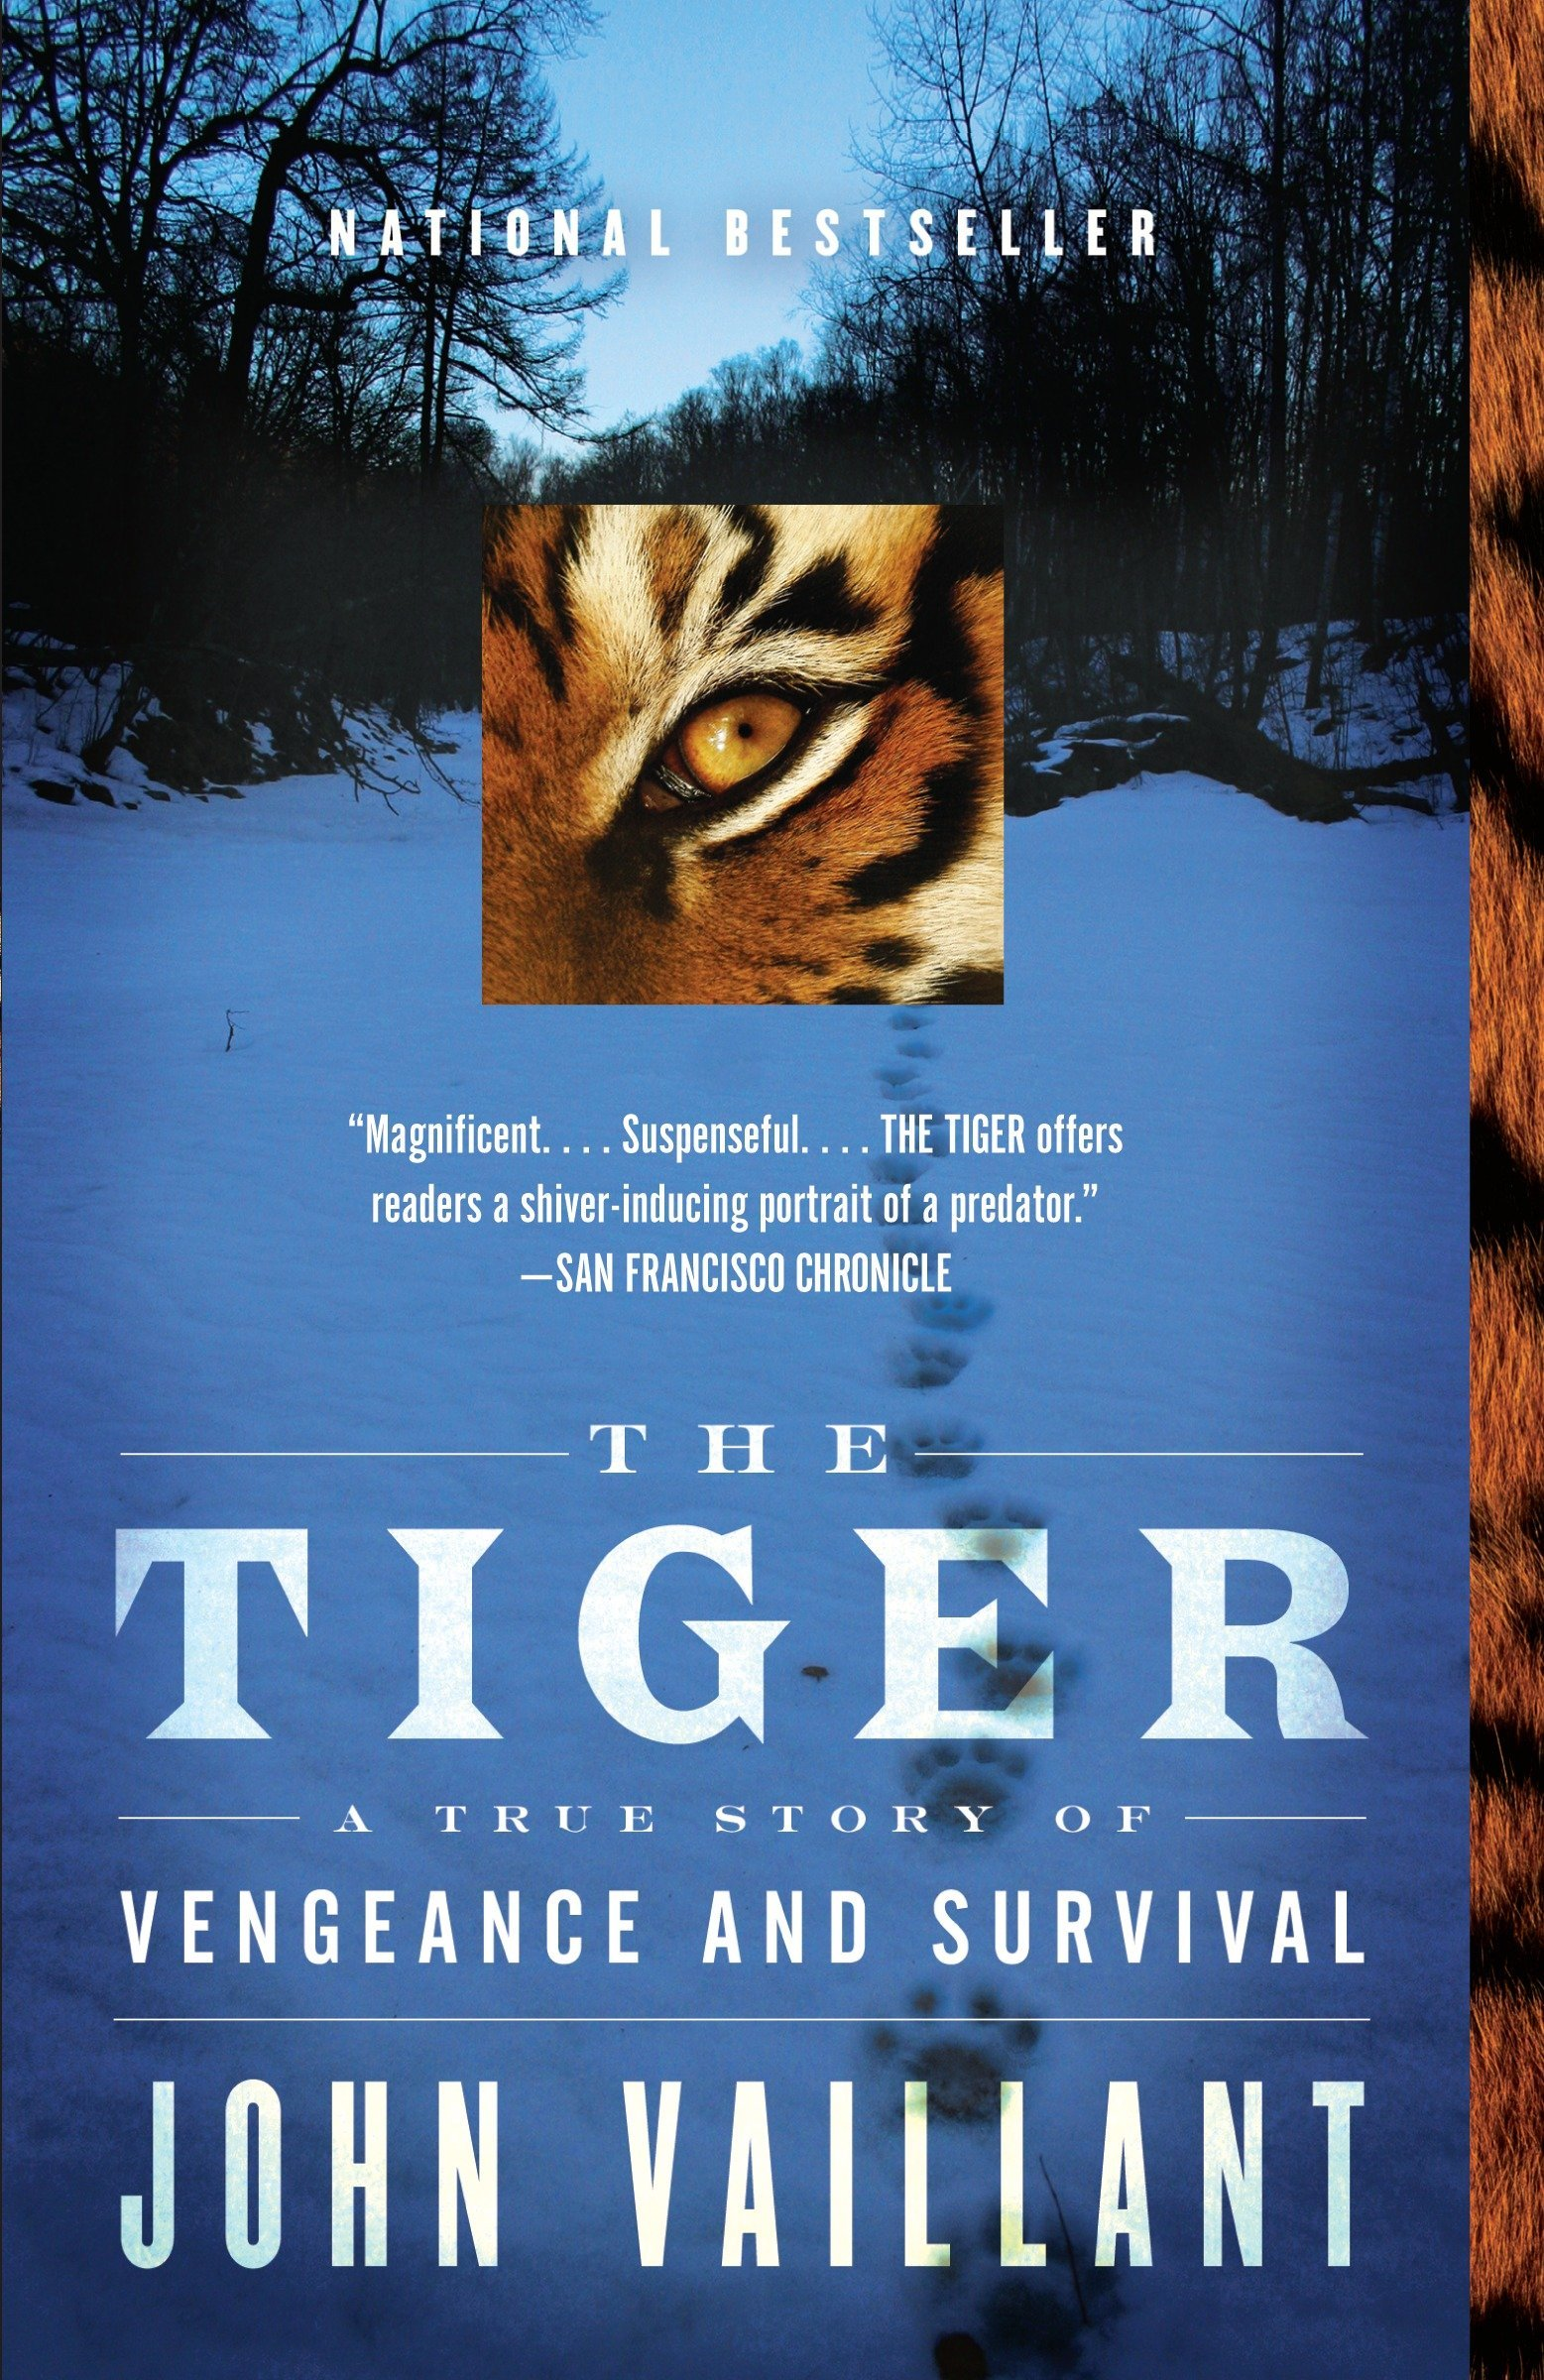 The Tiger: A True Story of Vengeance and Survival (Vintage